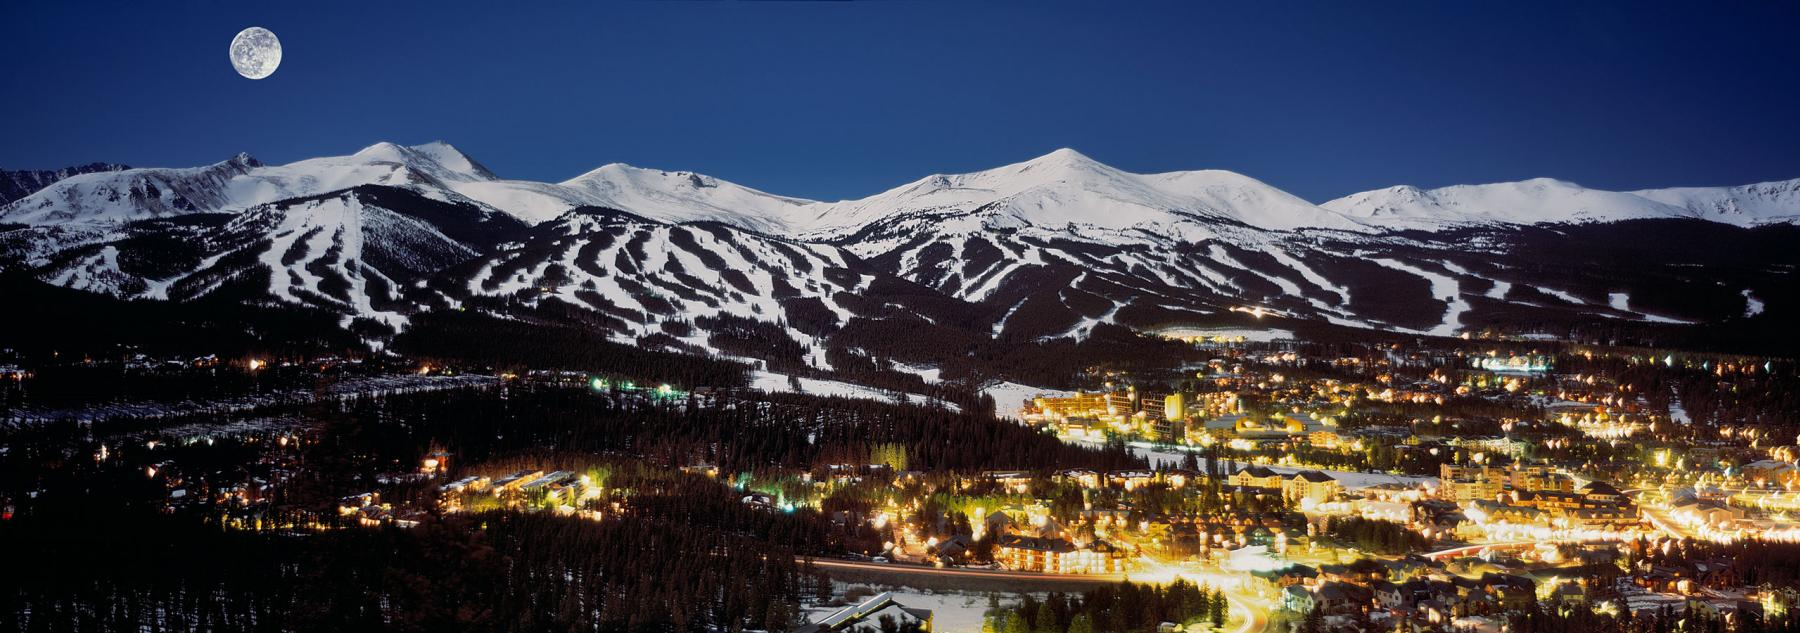 Full Moon Over Breckenridge